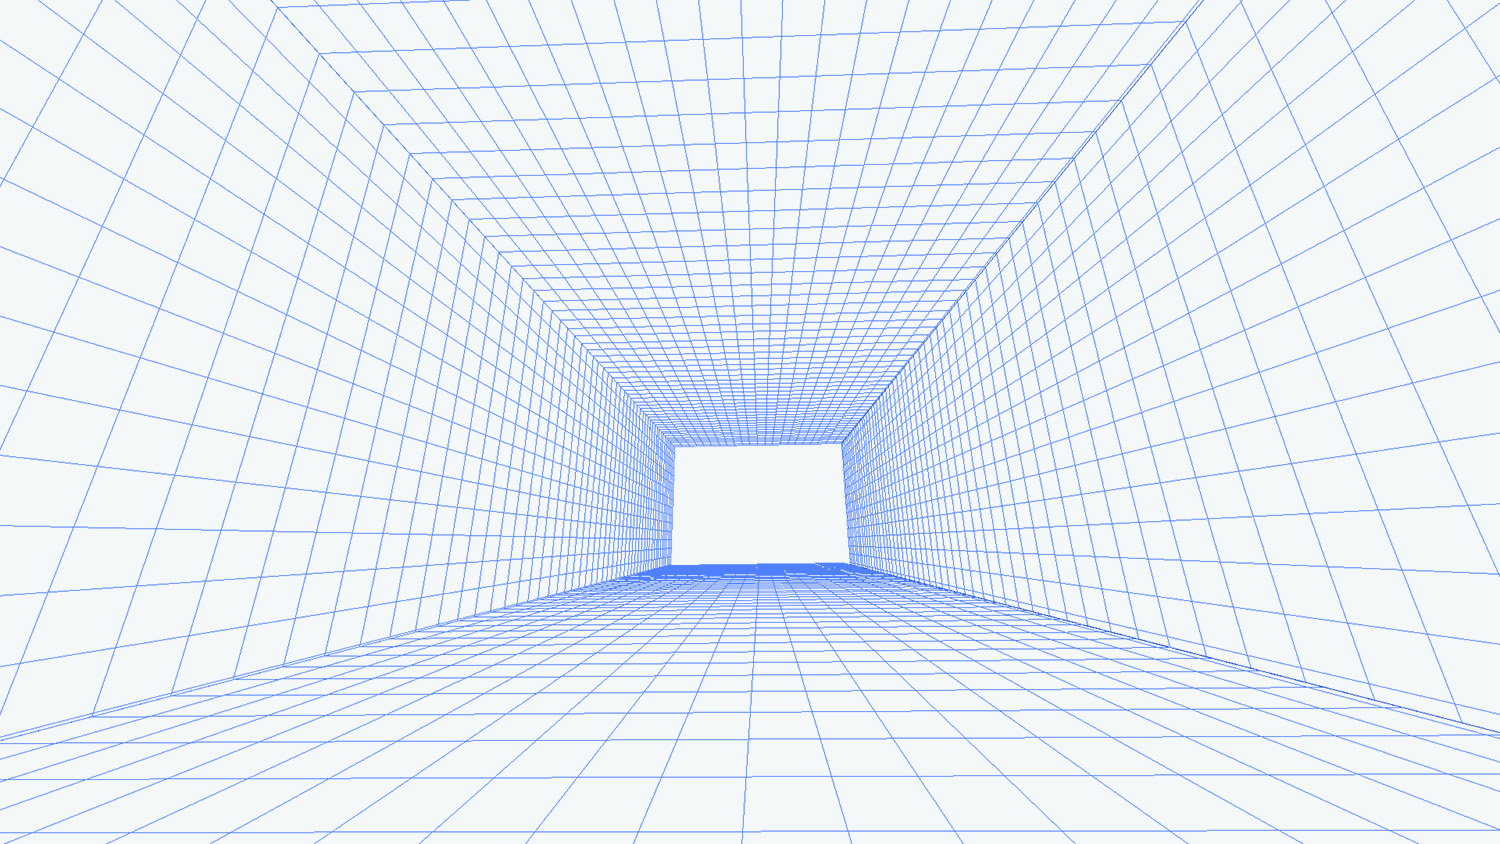 Vanishing Point grid in Photoshop